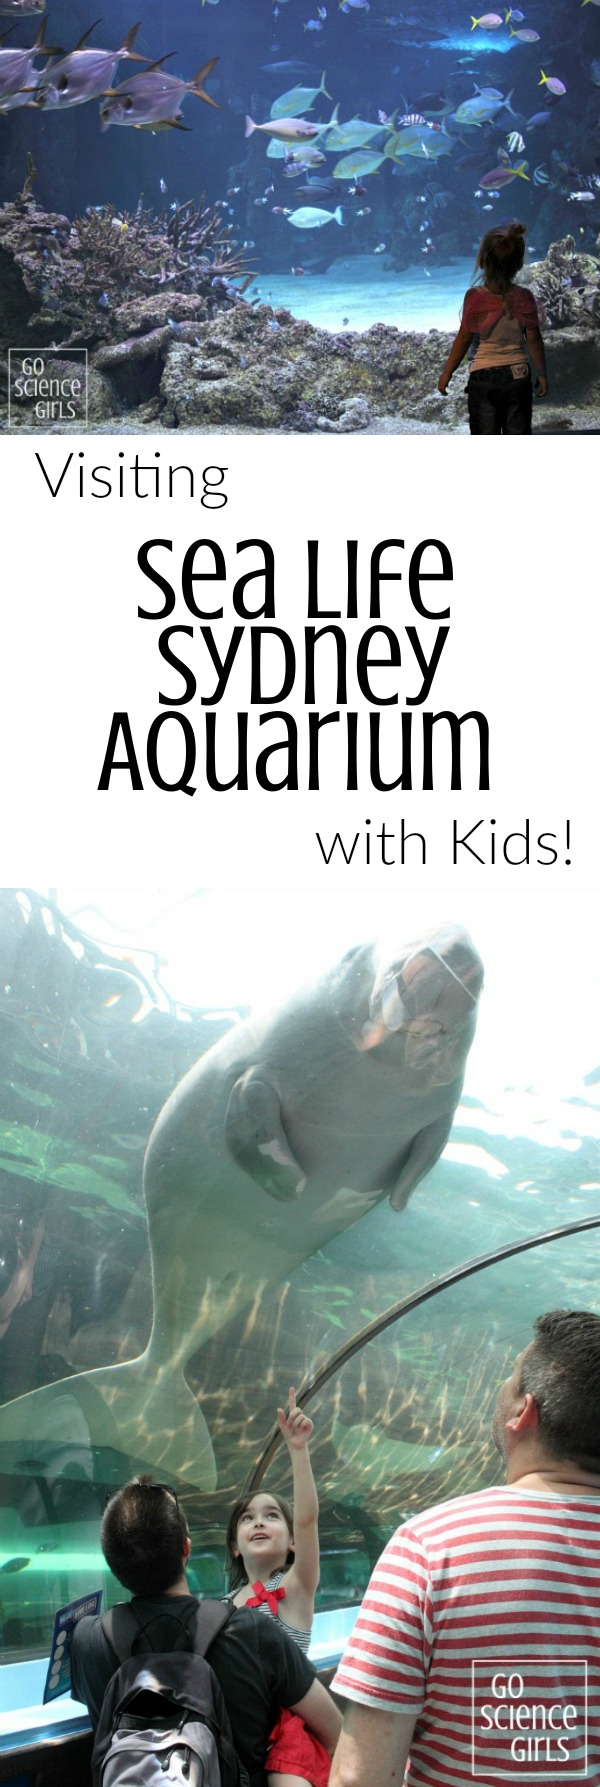 Visiting Sea Life Sydney Aquarium with little kids - how to book, what to expect, how to make the most of your adventure - and the fun science you can experience on the way. A review by Go Science Kids.